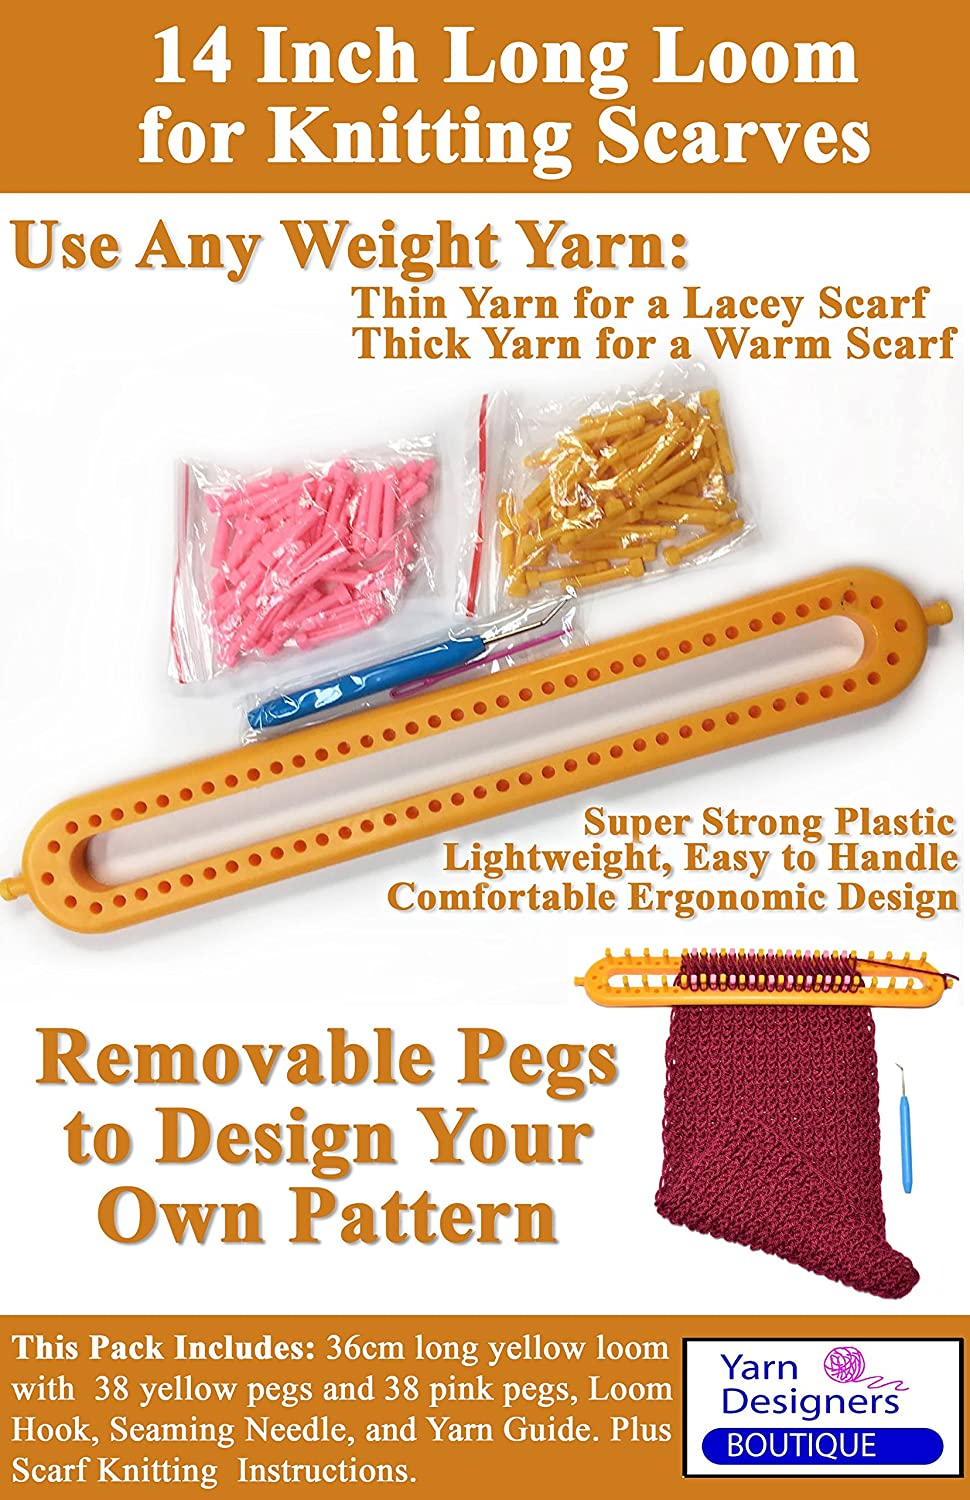 Amazon.com: Long Scarf Knitting Loom with Removable Pegs, Knitting ...